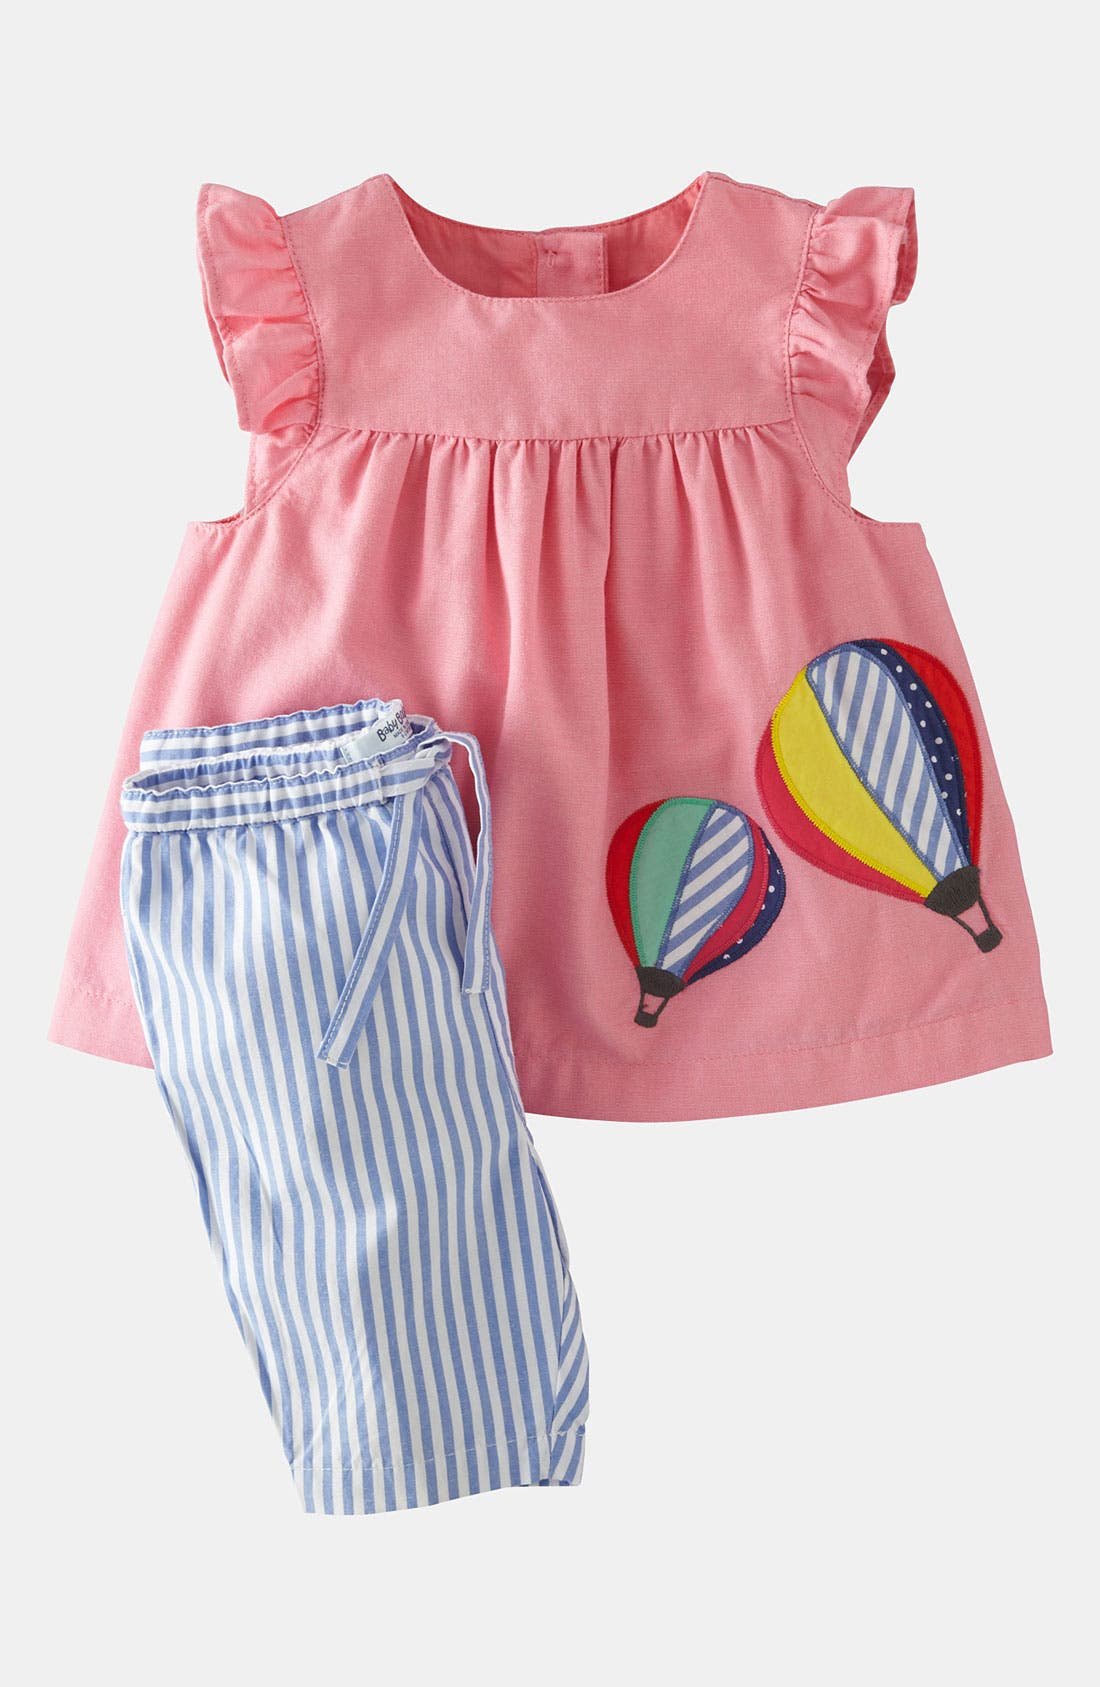 Main Image - Mini Boden Appliqué Dress & Leggings (Baby Girls)